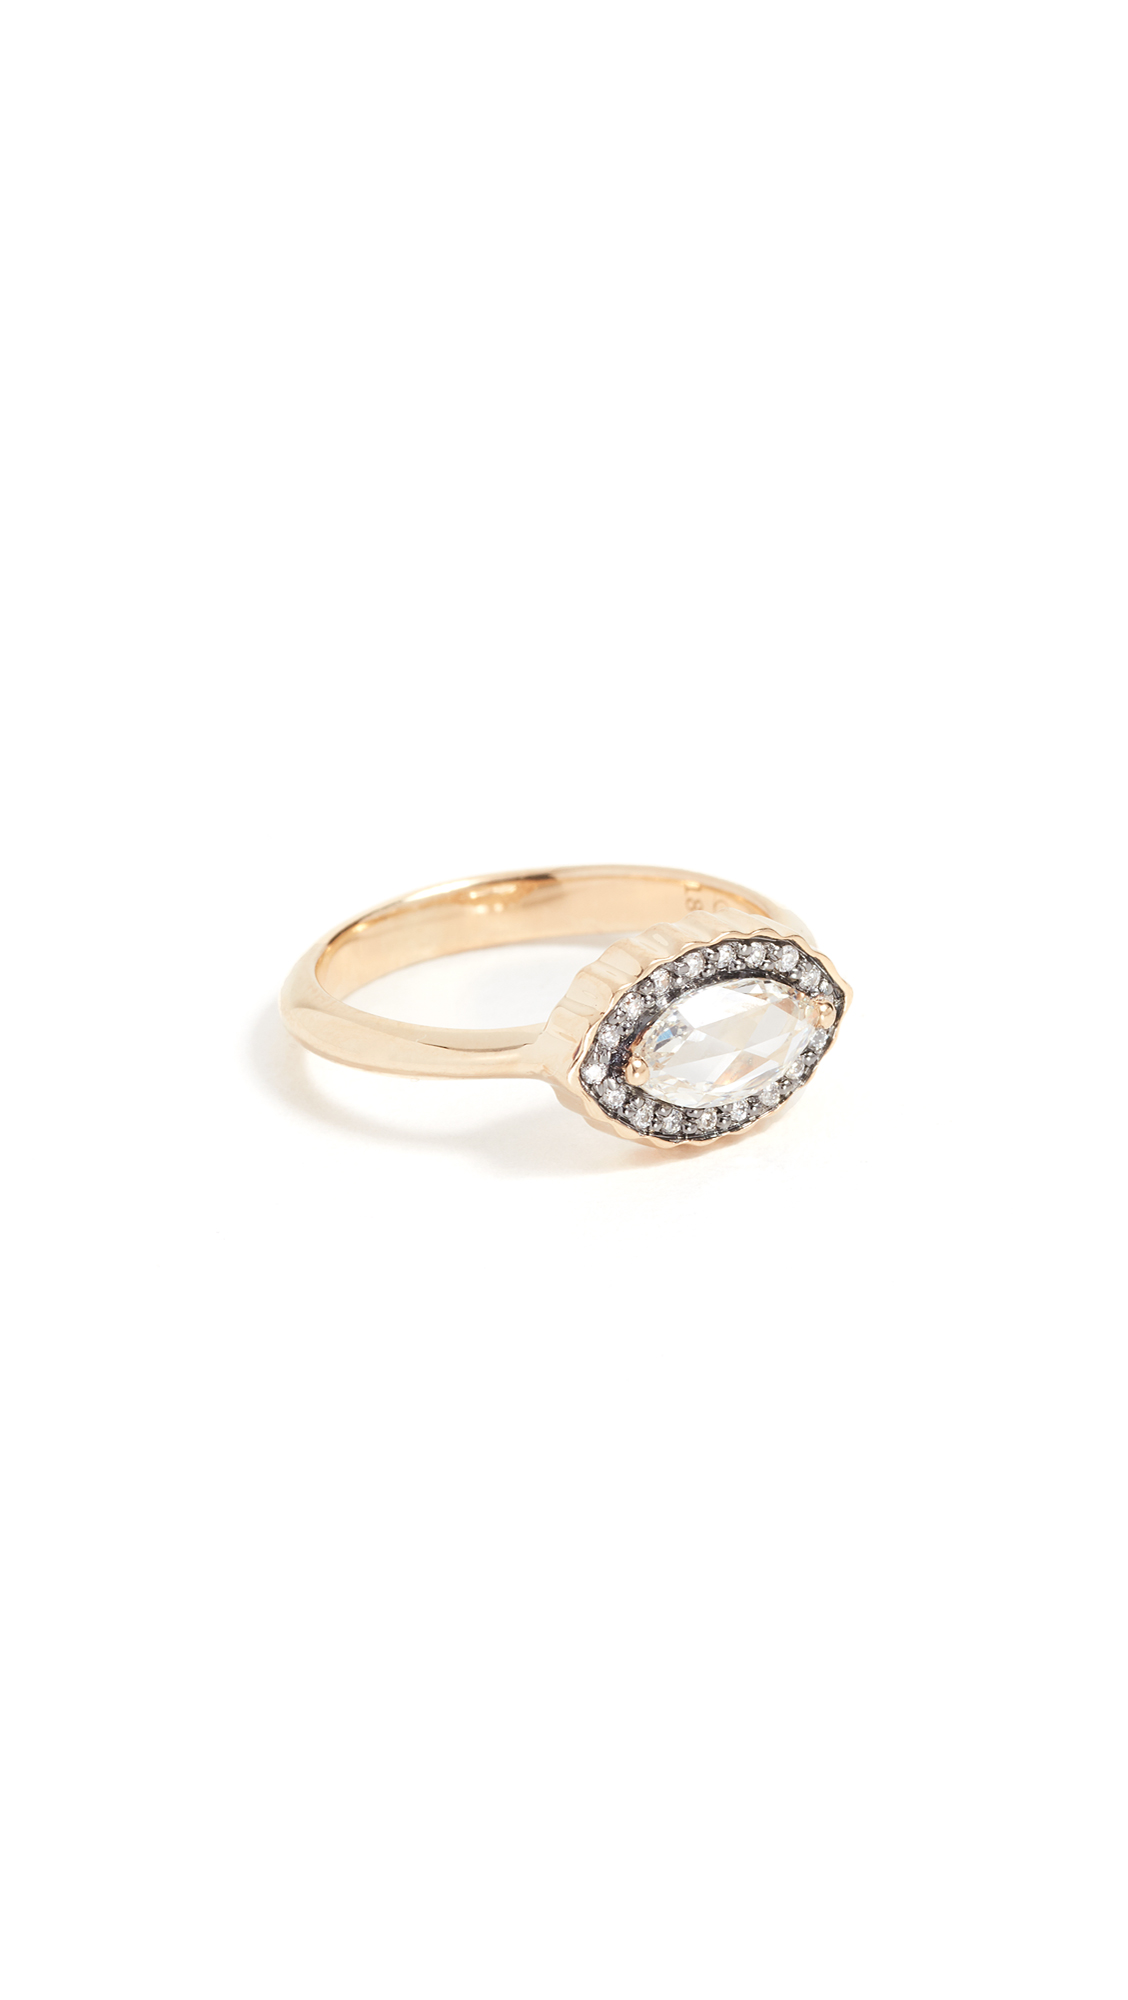 SORELLINA 18K Gold Marquise Diamond Ring in Gold/Clear